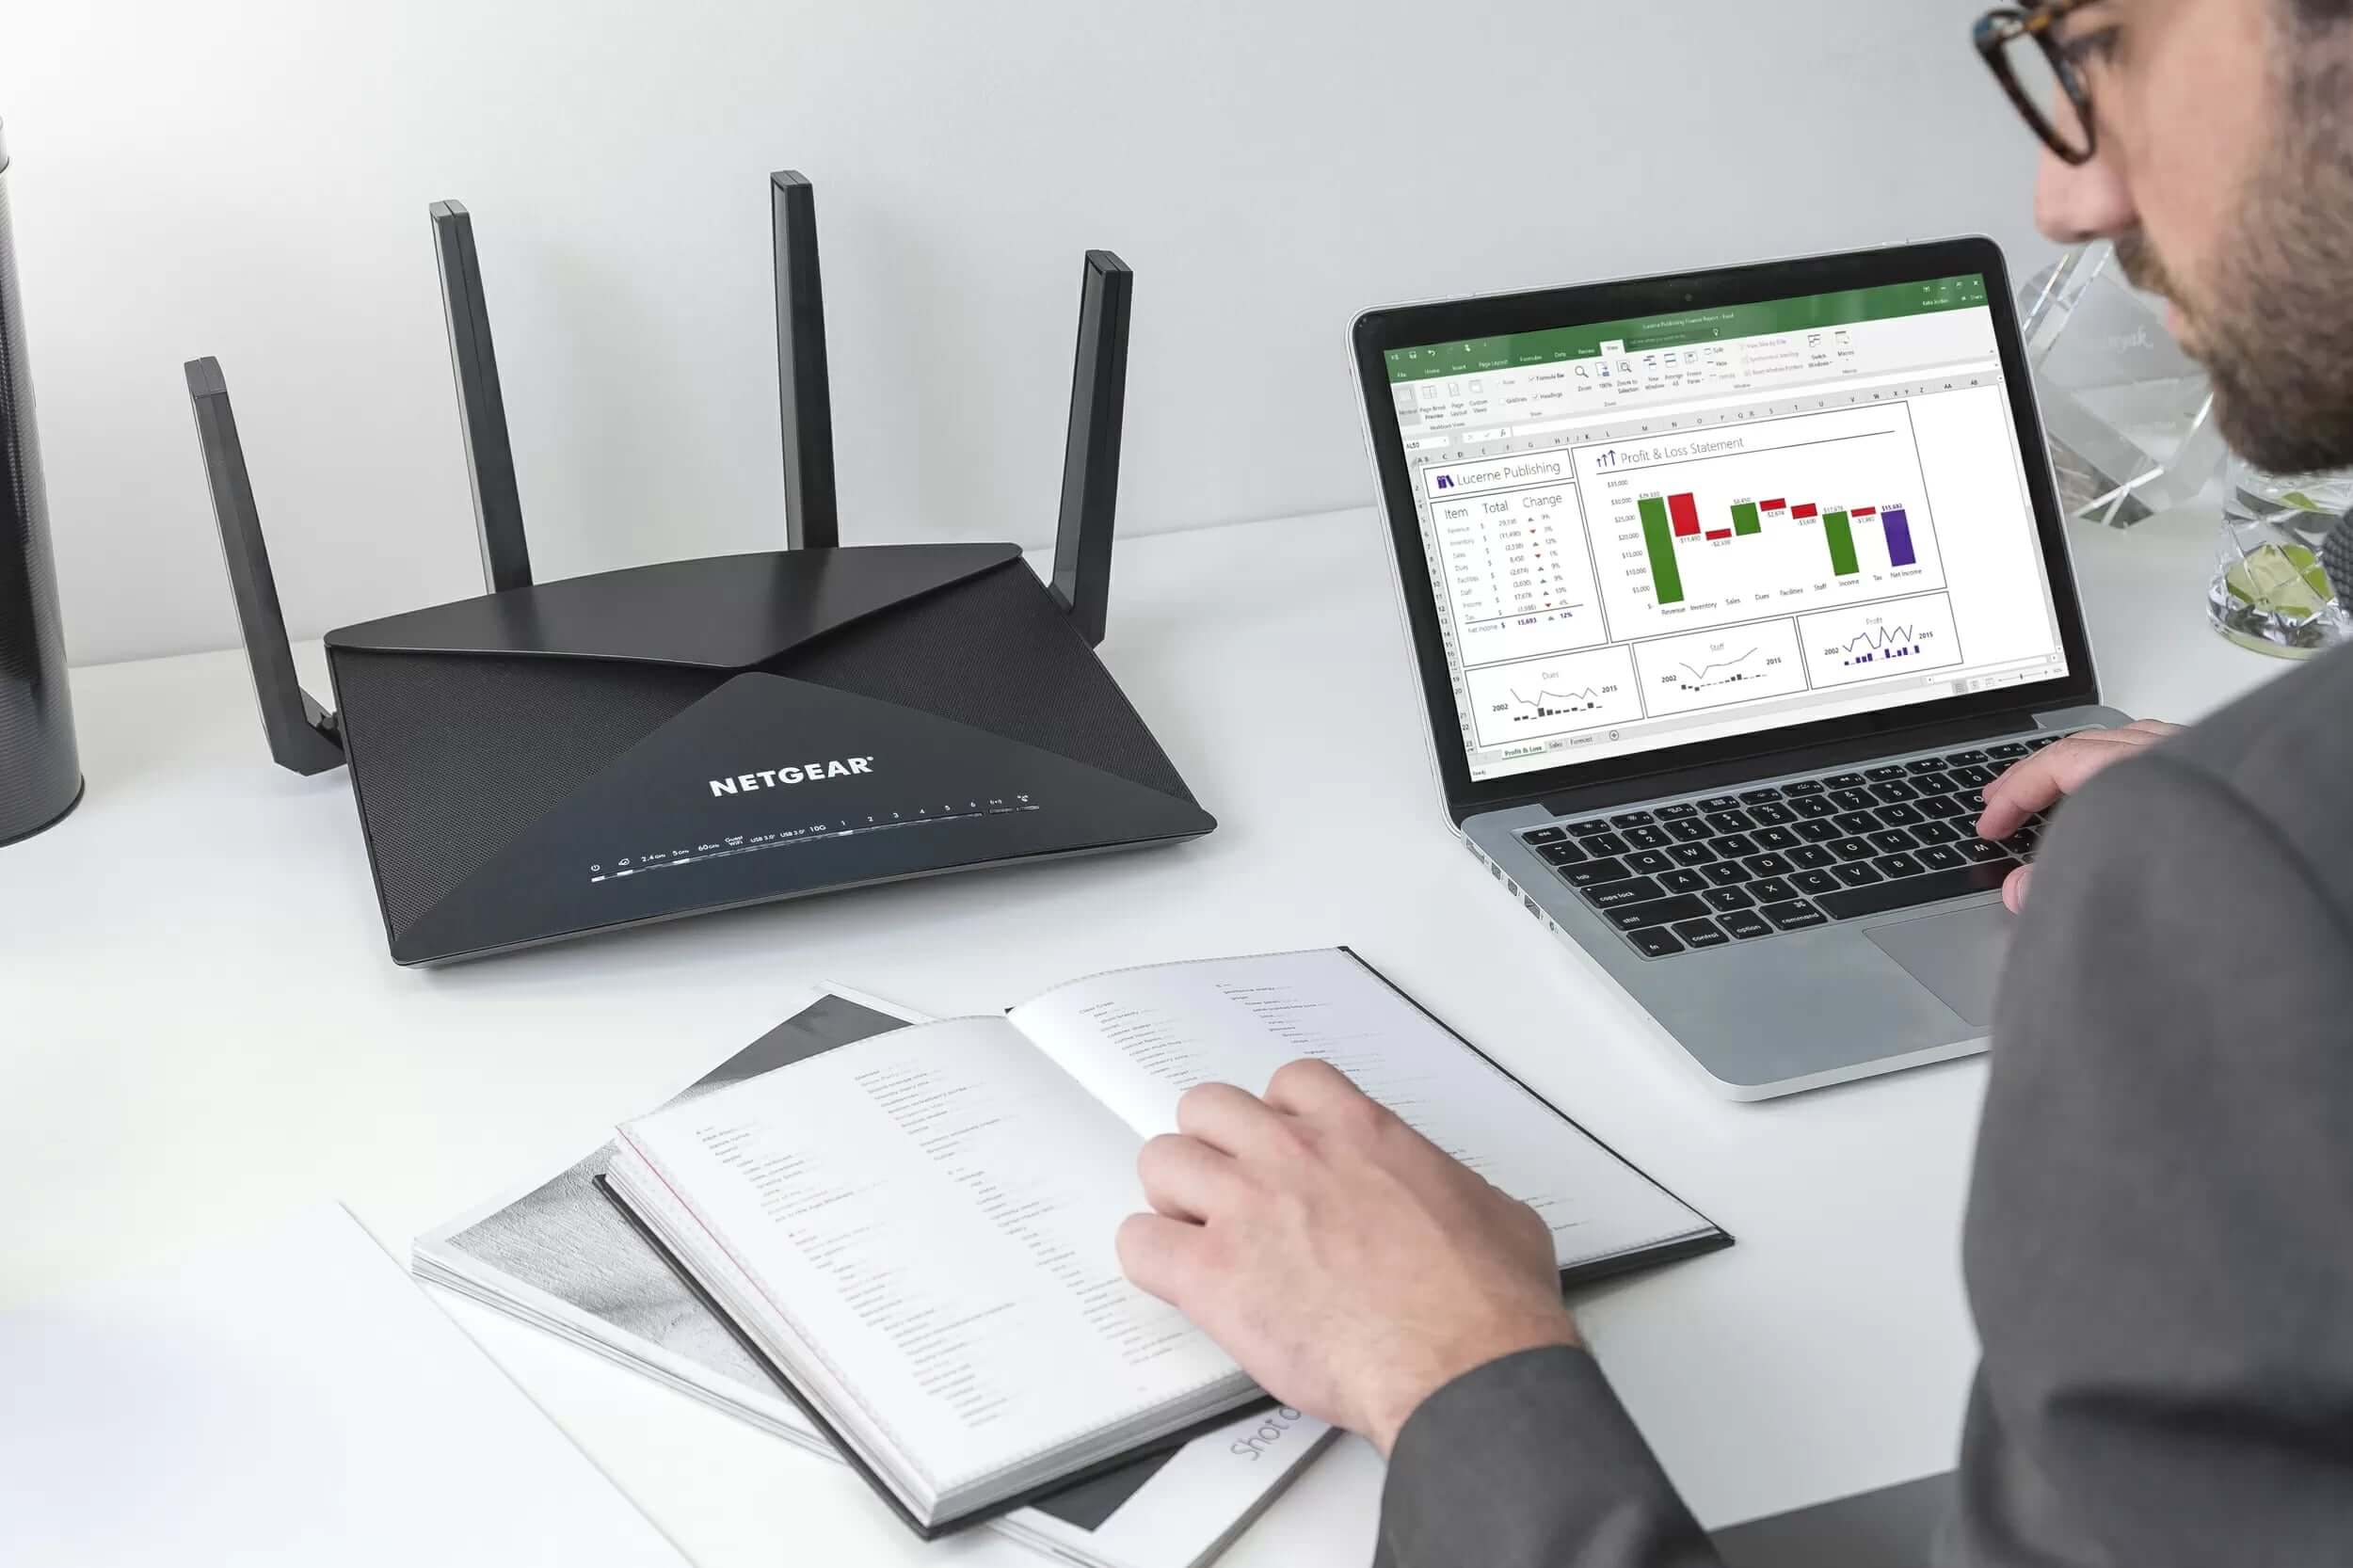 Netgear's latest Nighthawk router comes with all the bells and whistles